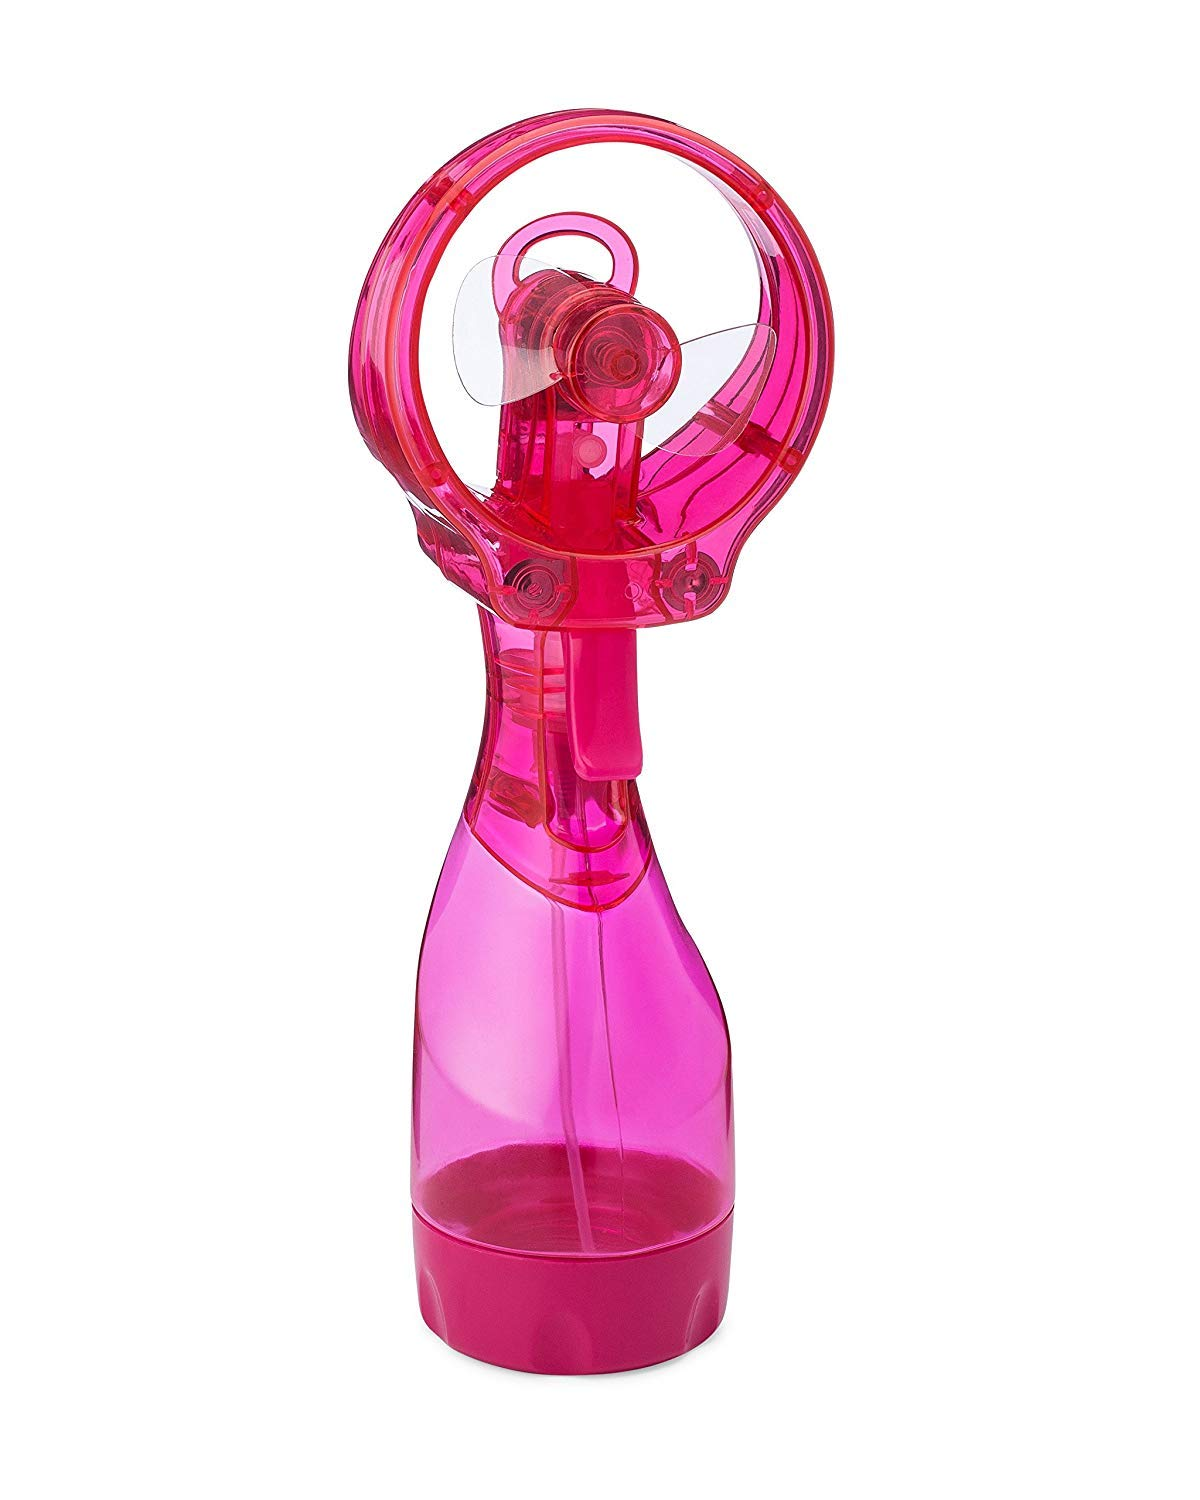 O2COOL FML0001 Deluxe Handheld Battery Operated Misting Fan, 2, Raspberry